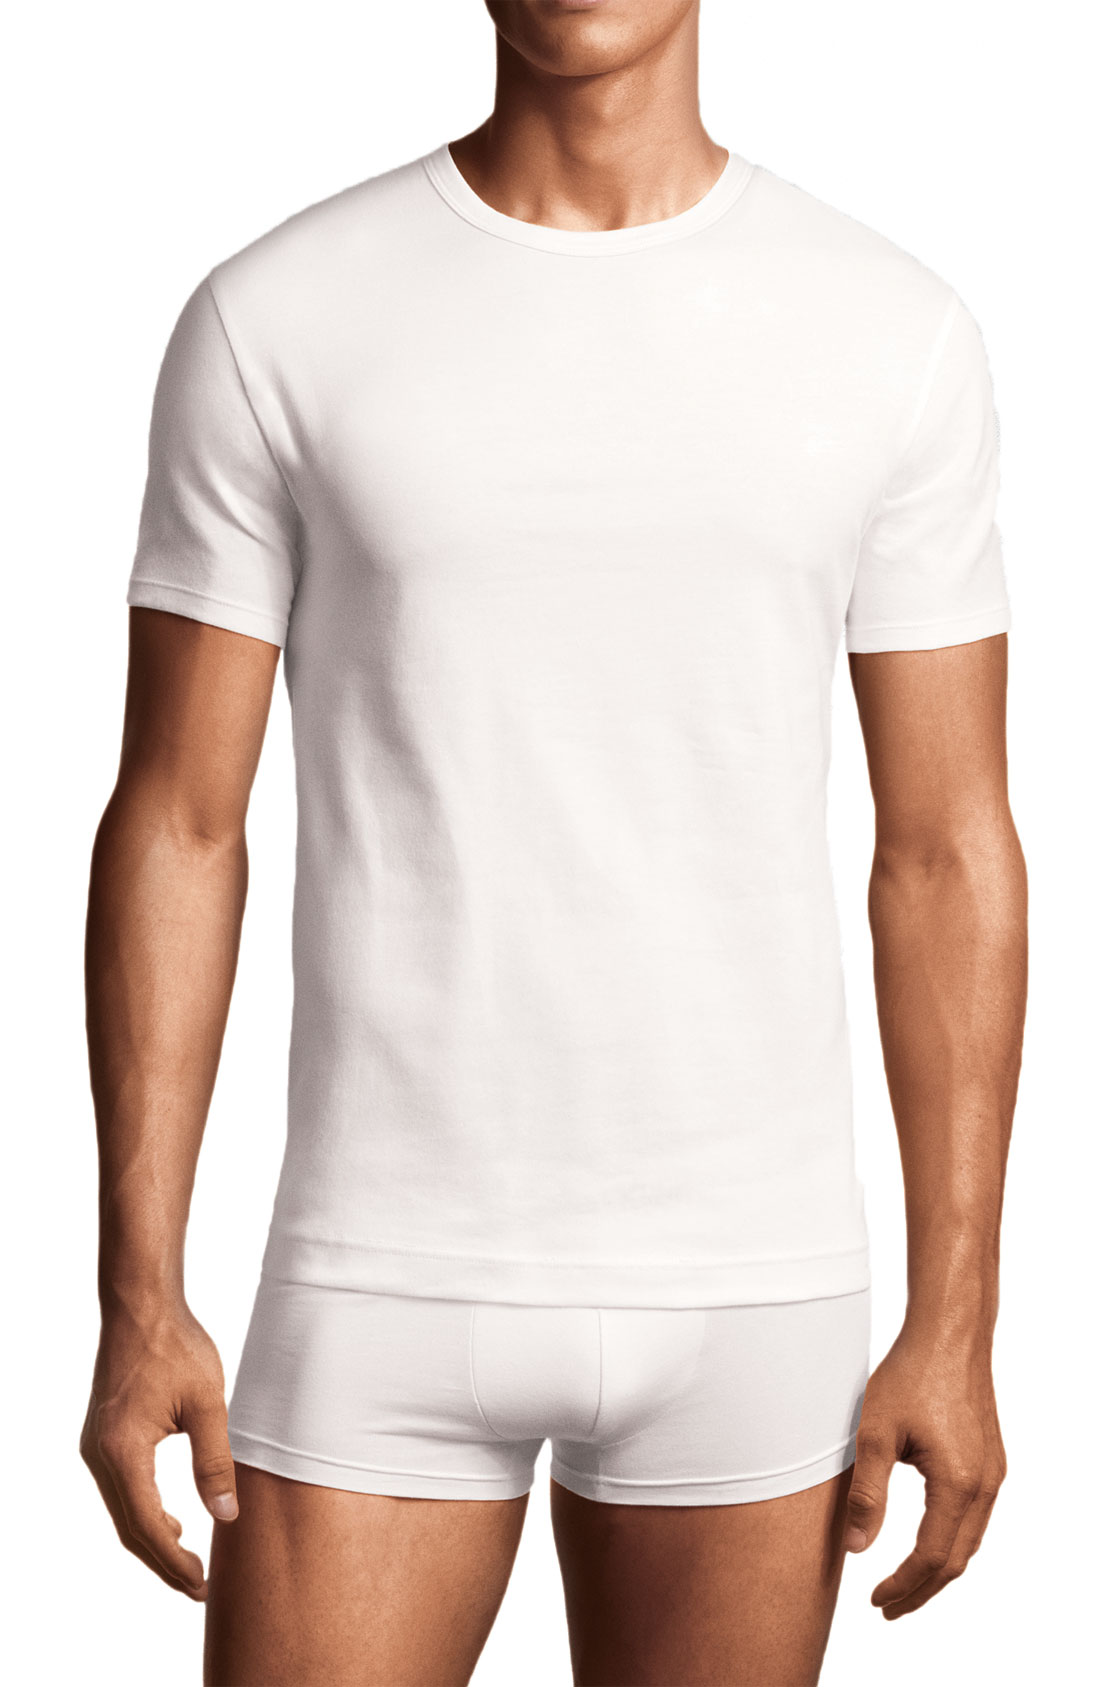 calvin klein crewneck t shirt 2 pack in white for men lyst. Black Bedroom Furniture Sets. Home Design Ideas